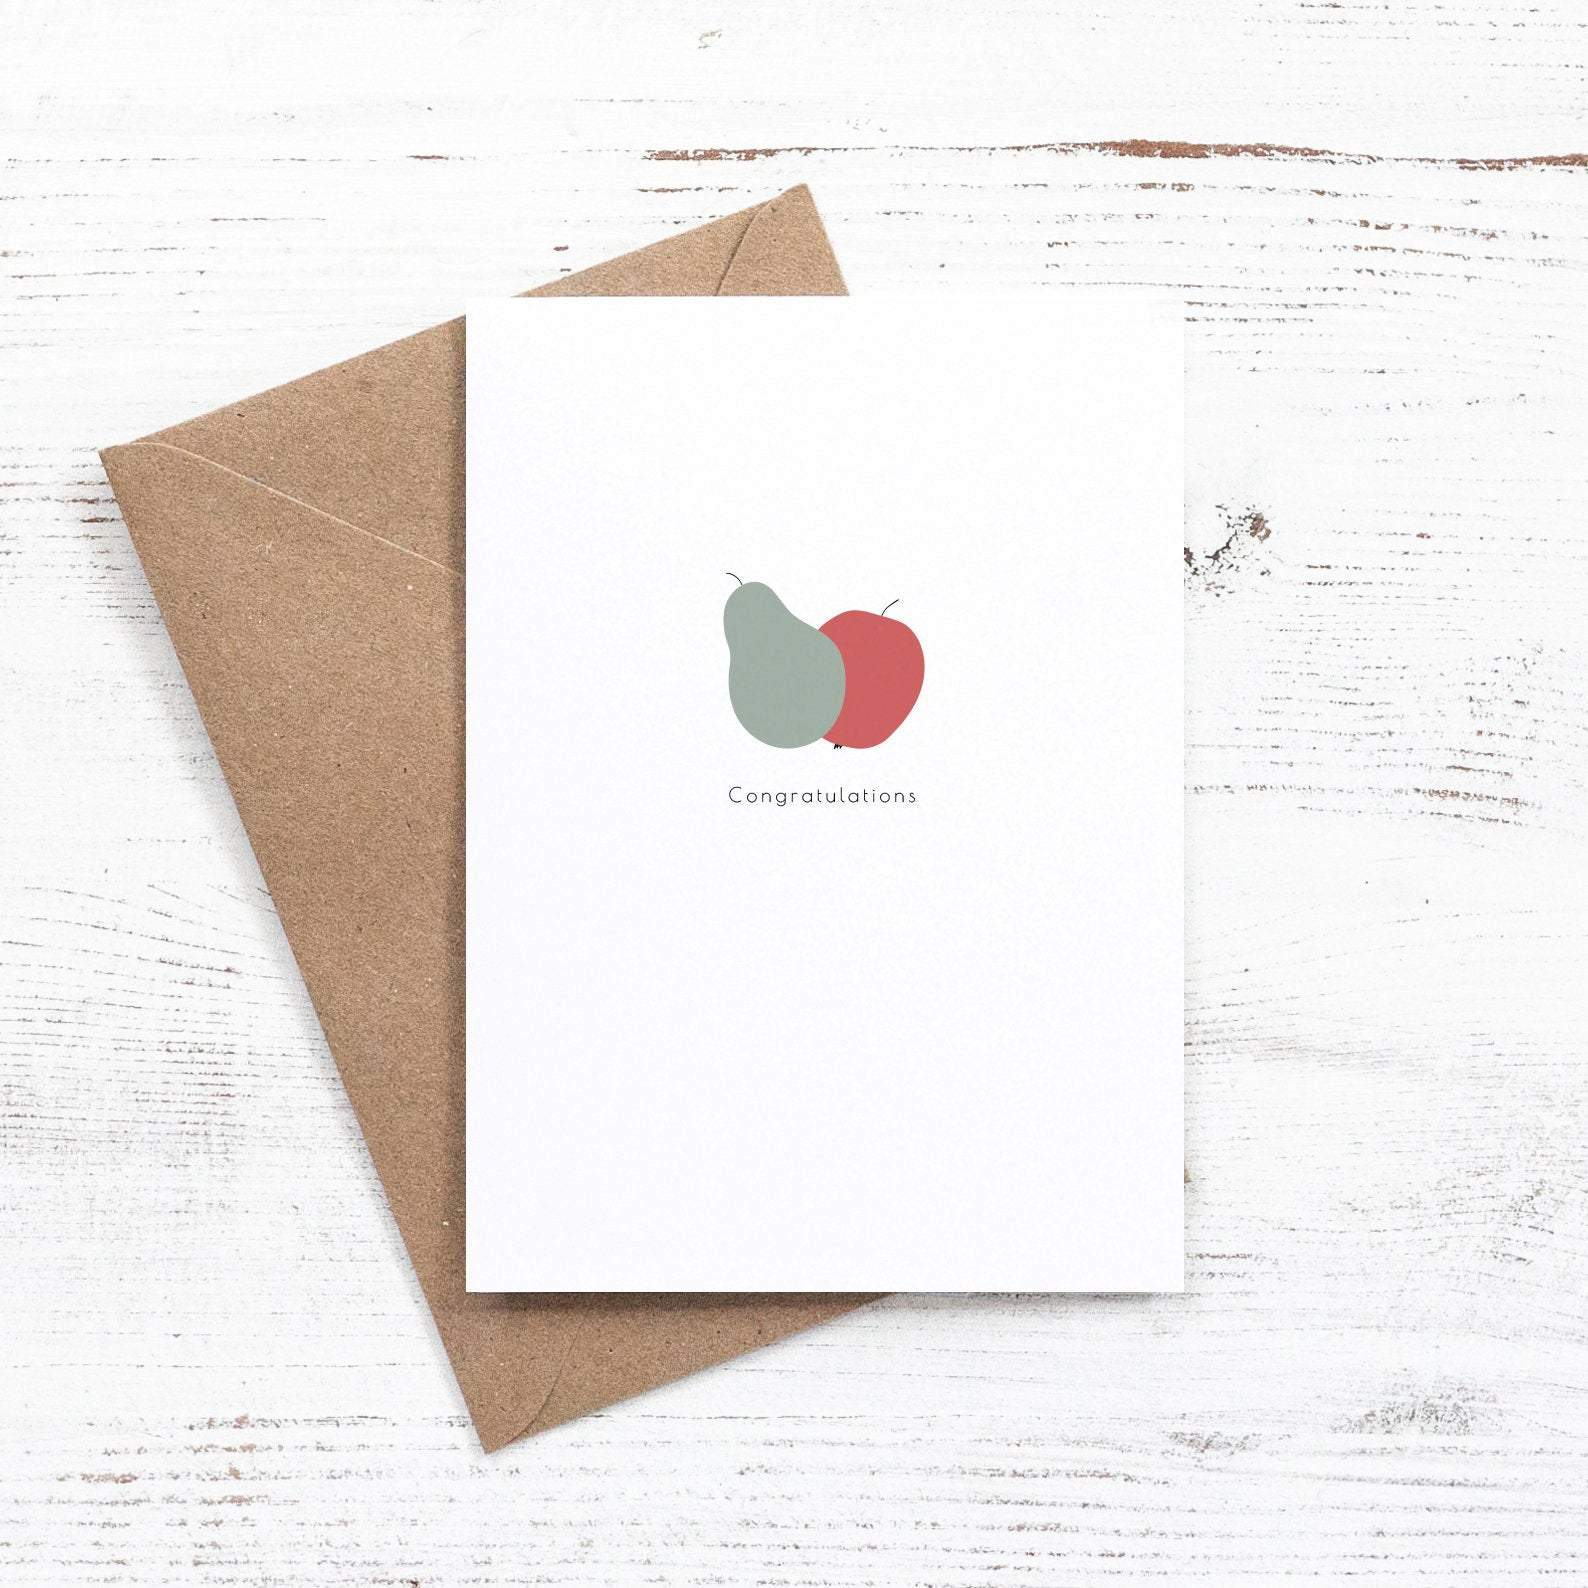 Fruity congratulations card